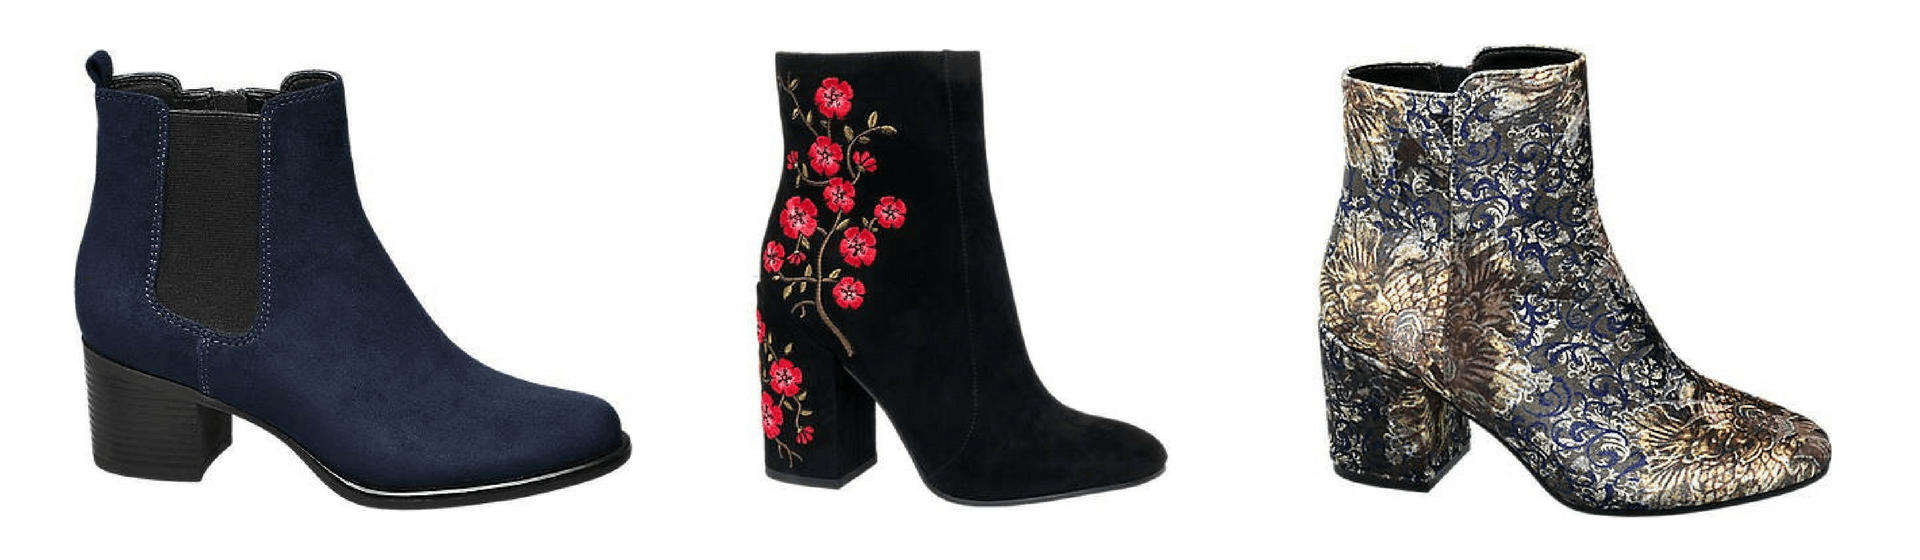 Boots Archives Shoelove by Deichmann